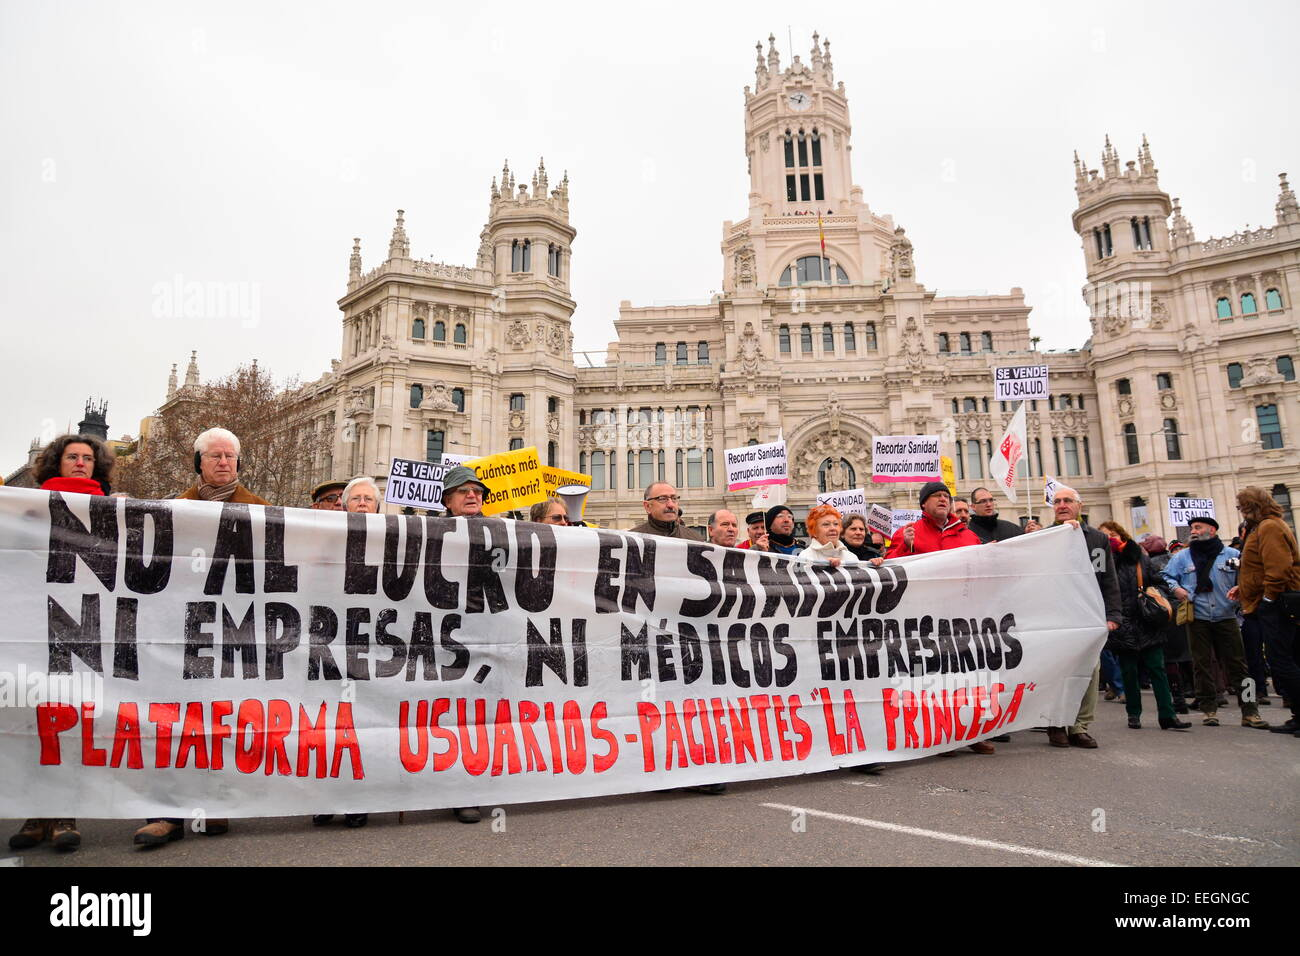 18th Jan, 2015. People protesting against healthcare funding cuts during a demonstration in Madrid, Spain. Credit: - Stock Image